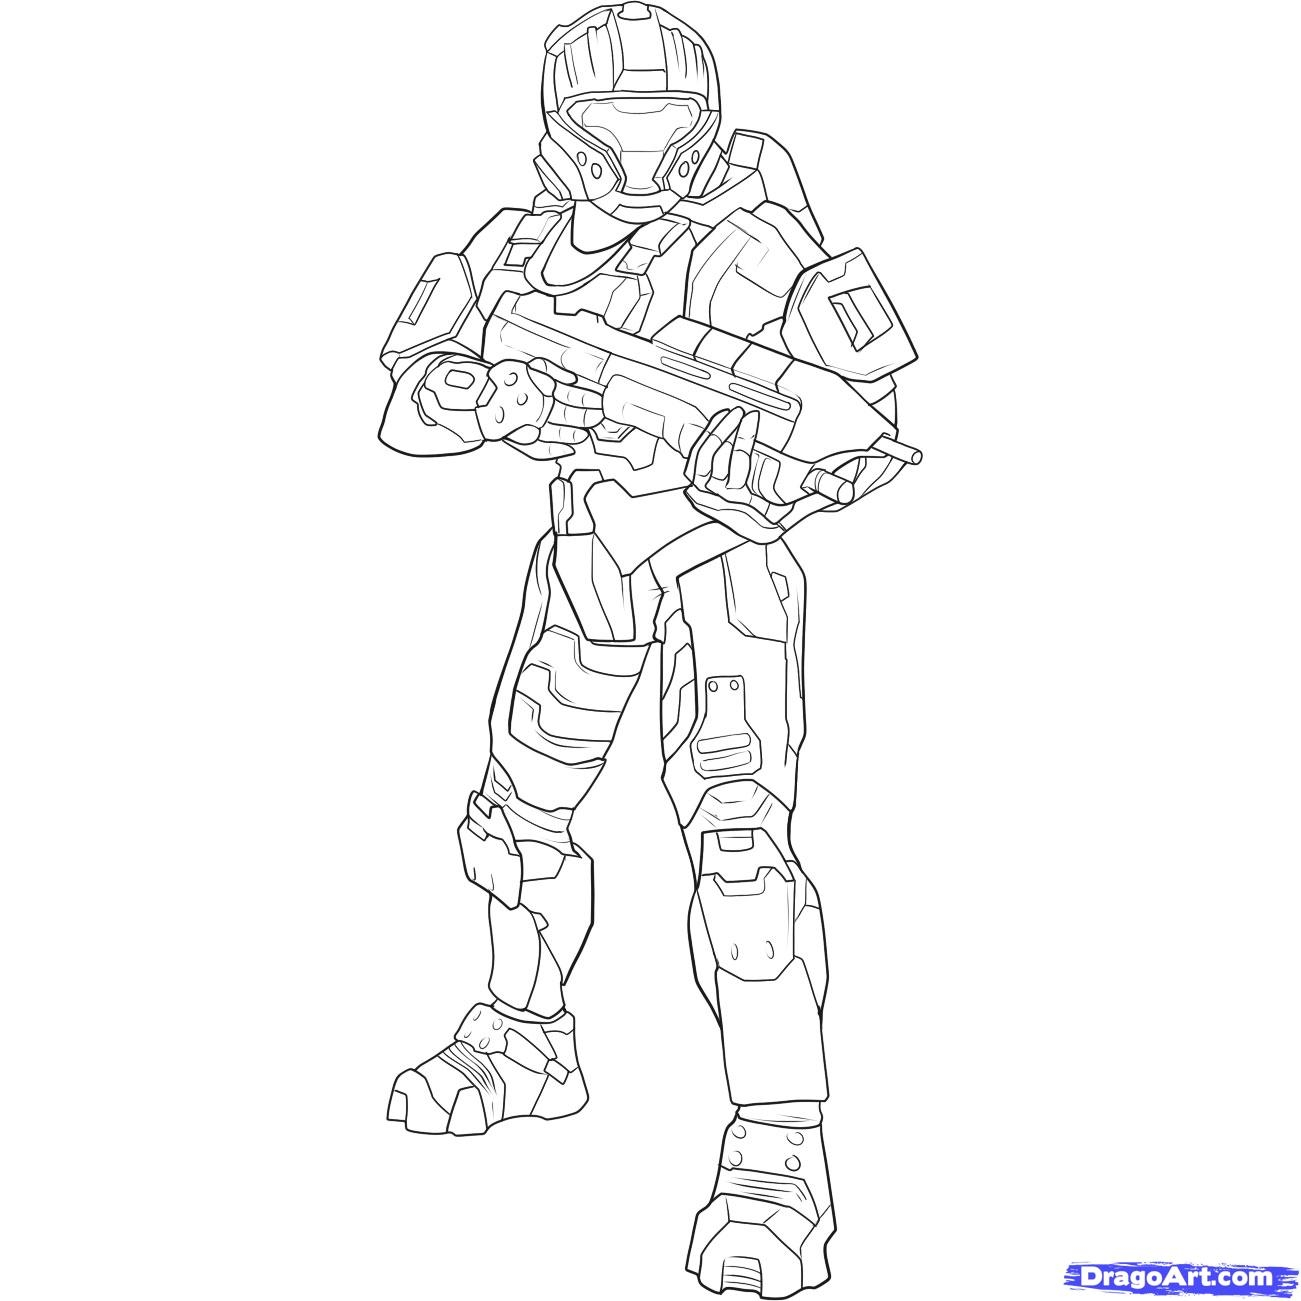 1301x1301 Awesome Cartoon Halo Spartan Coloring Pages